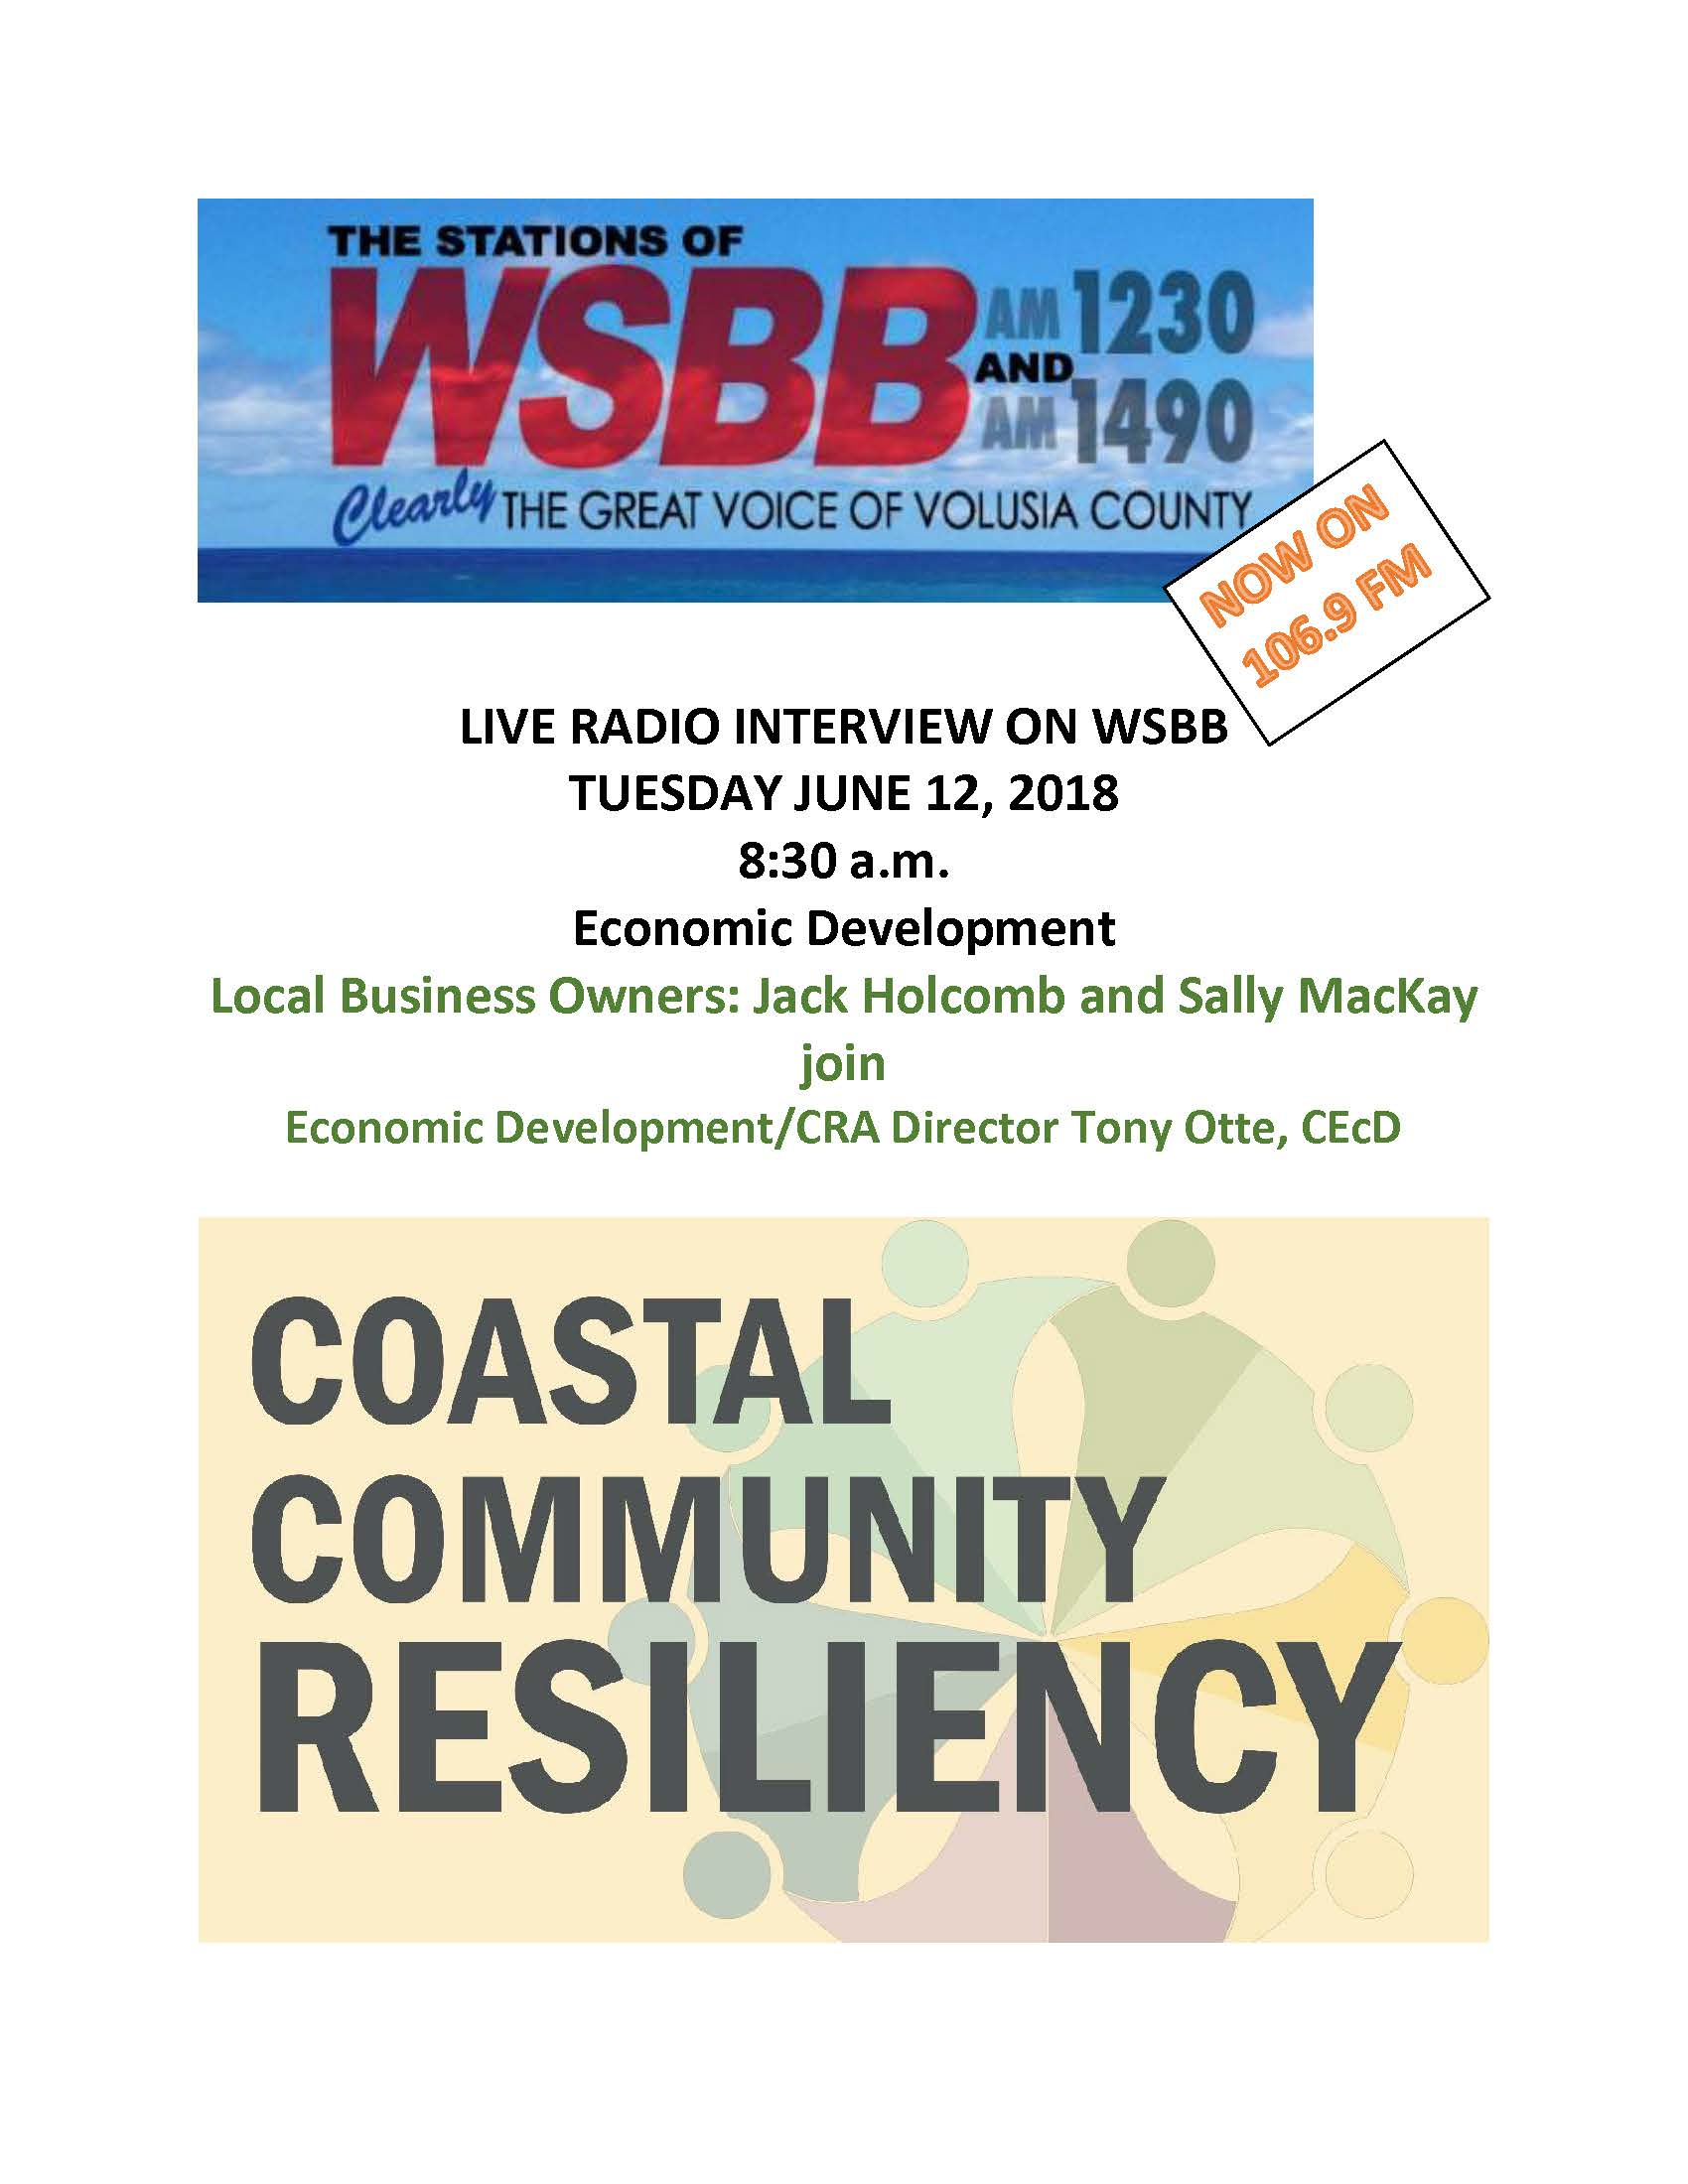 LIVE RADIO INTERVIEW ON WSBB 6.12.18